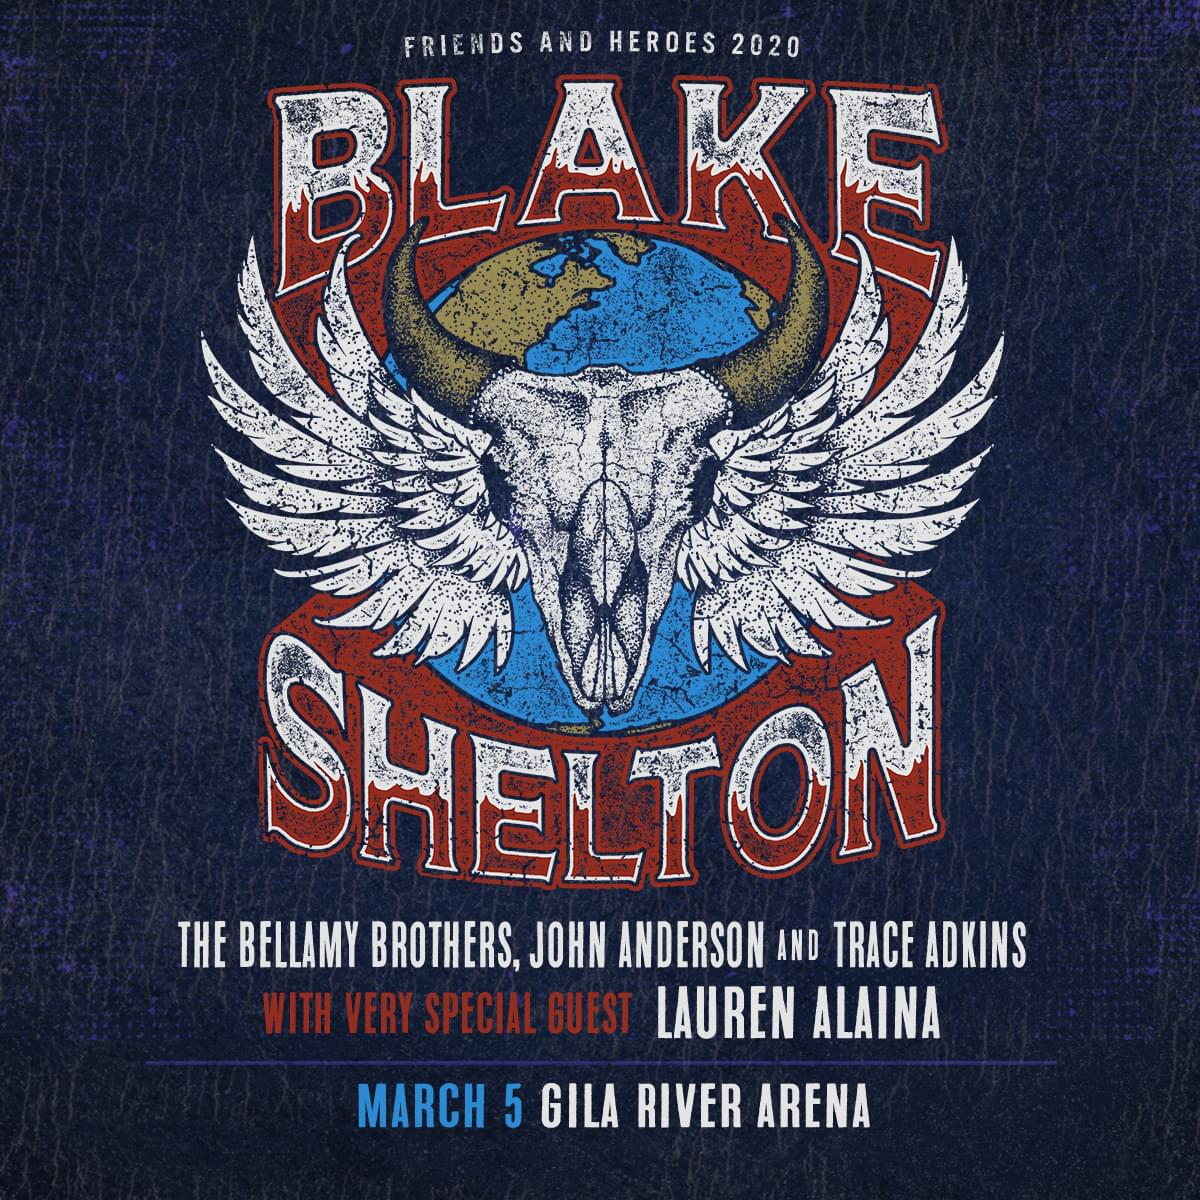 3/5: Blake Shelton at Gila River Arena